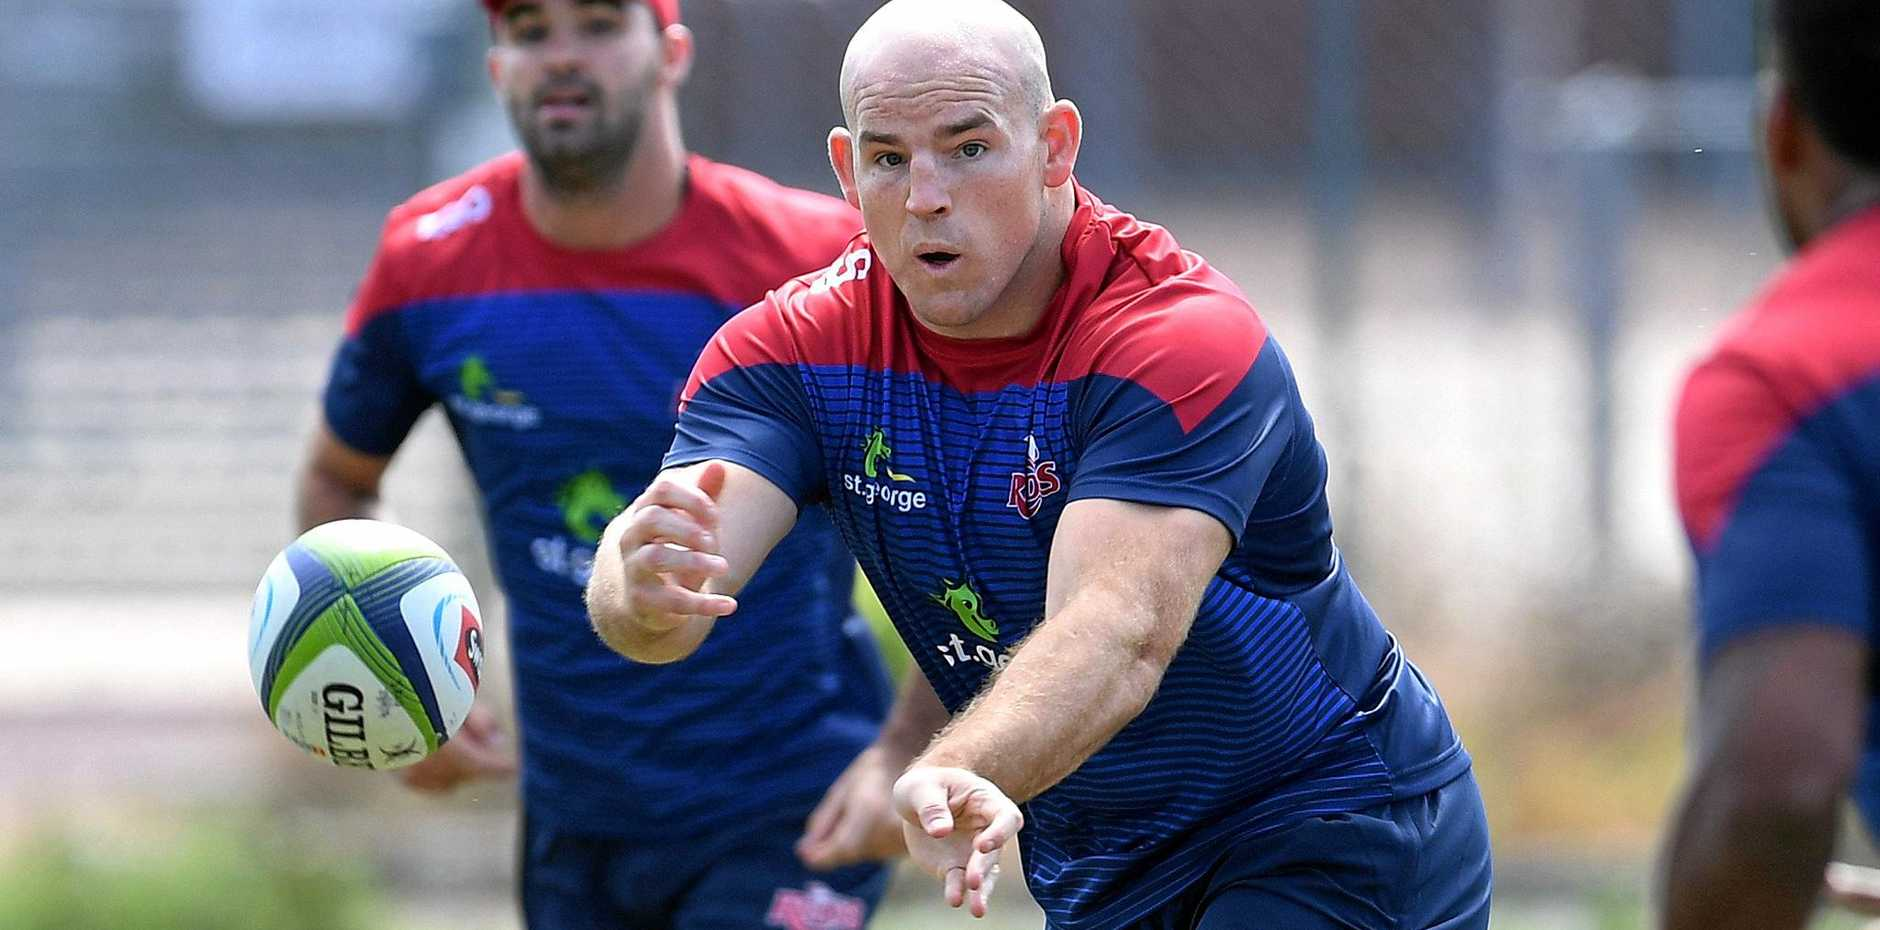 Queensland Reds player Stephen Moore in action during training in Brisbane.